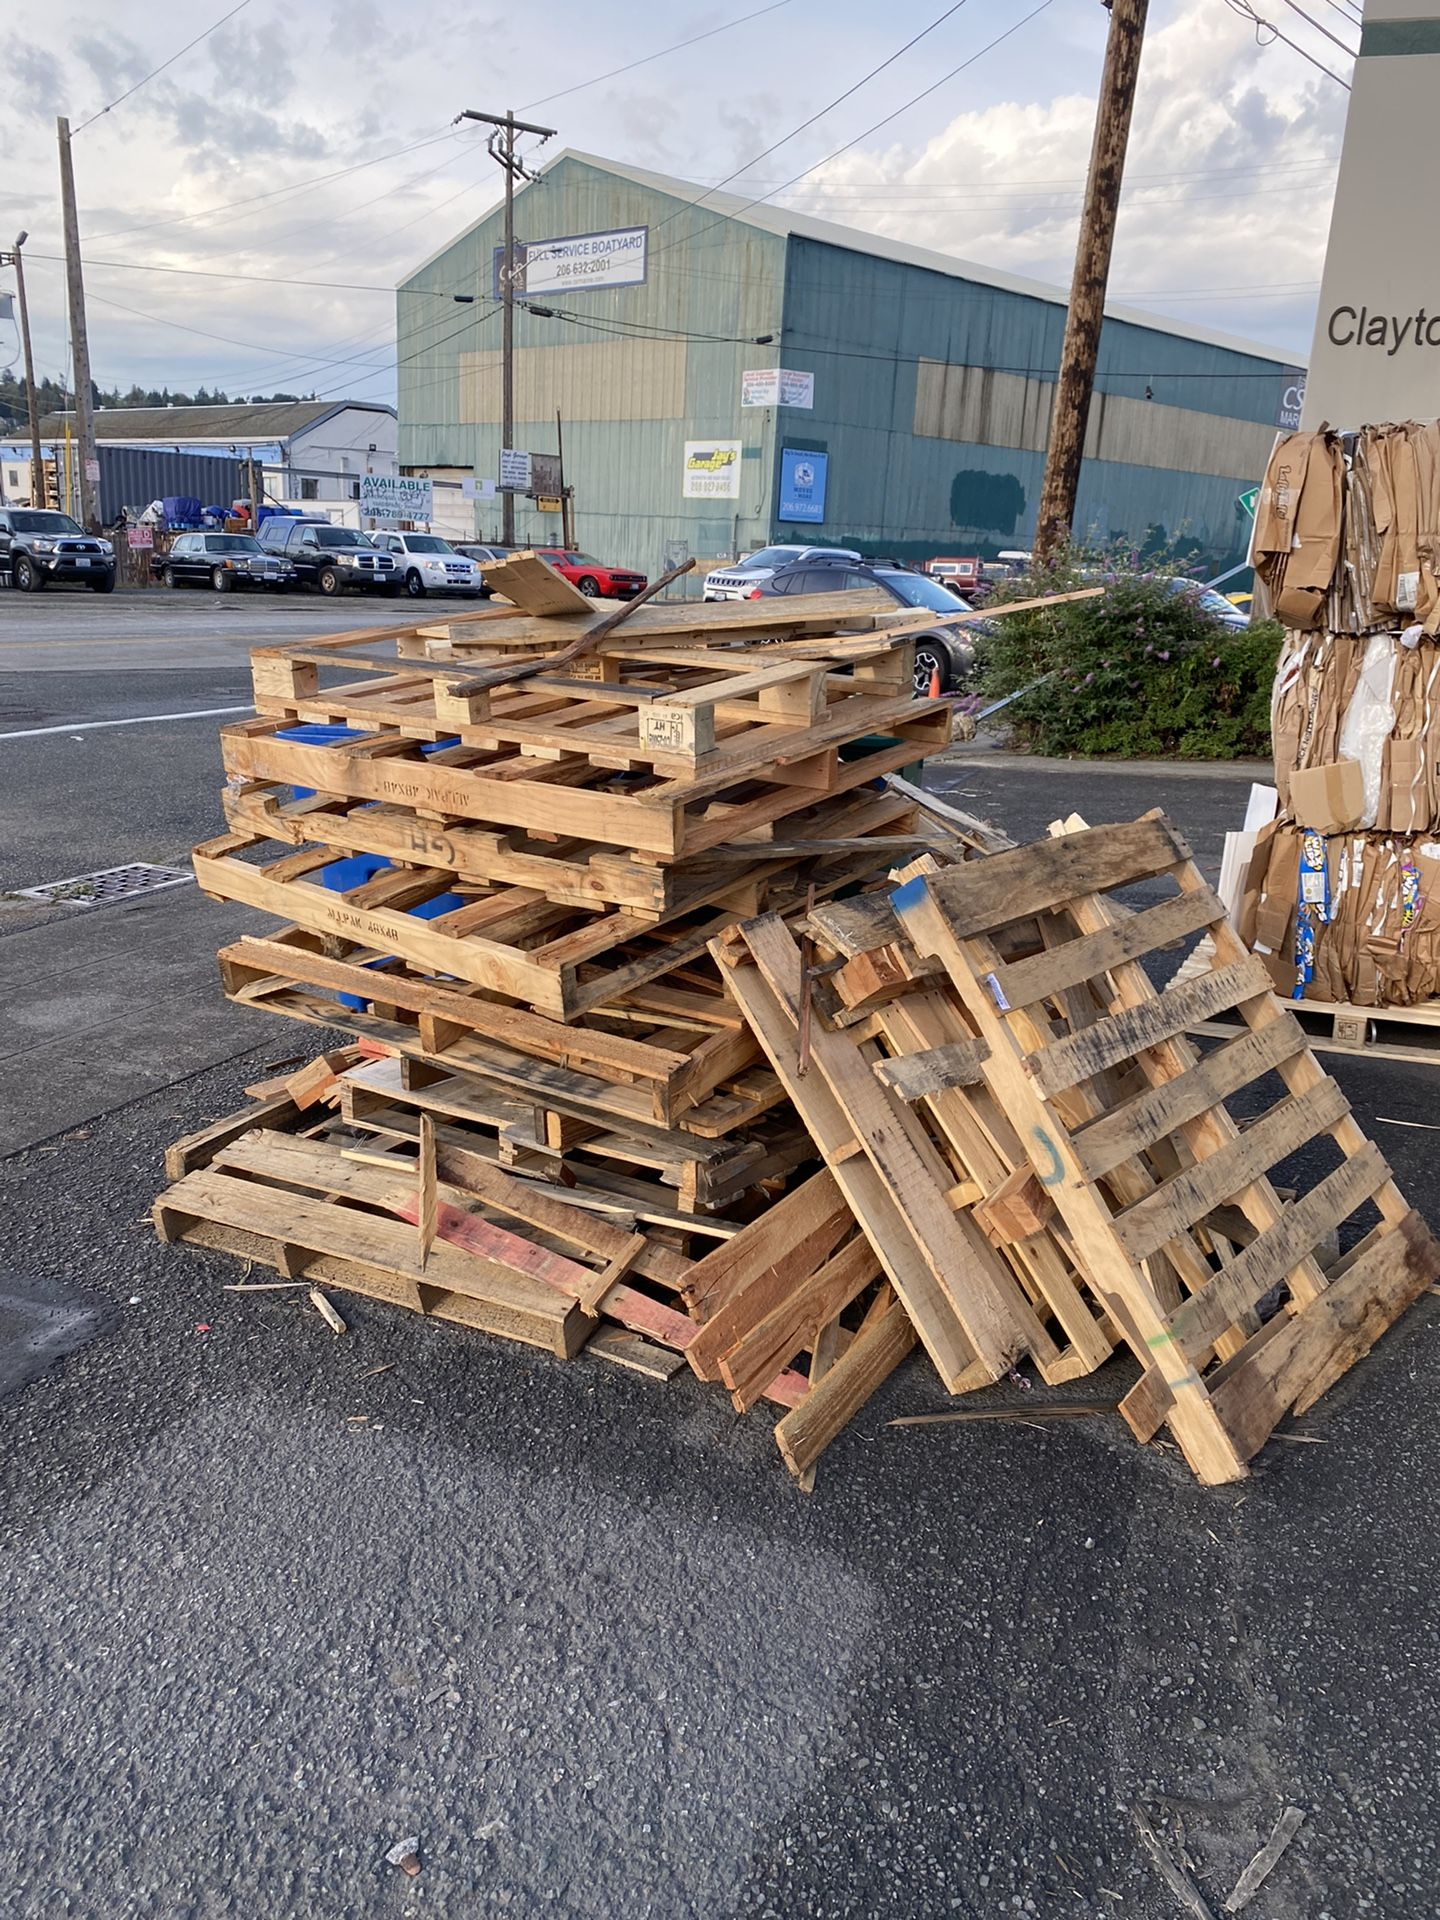 I'll pay $72.00 if you pick up 100% of these ~15 scrap pallets by 11am today